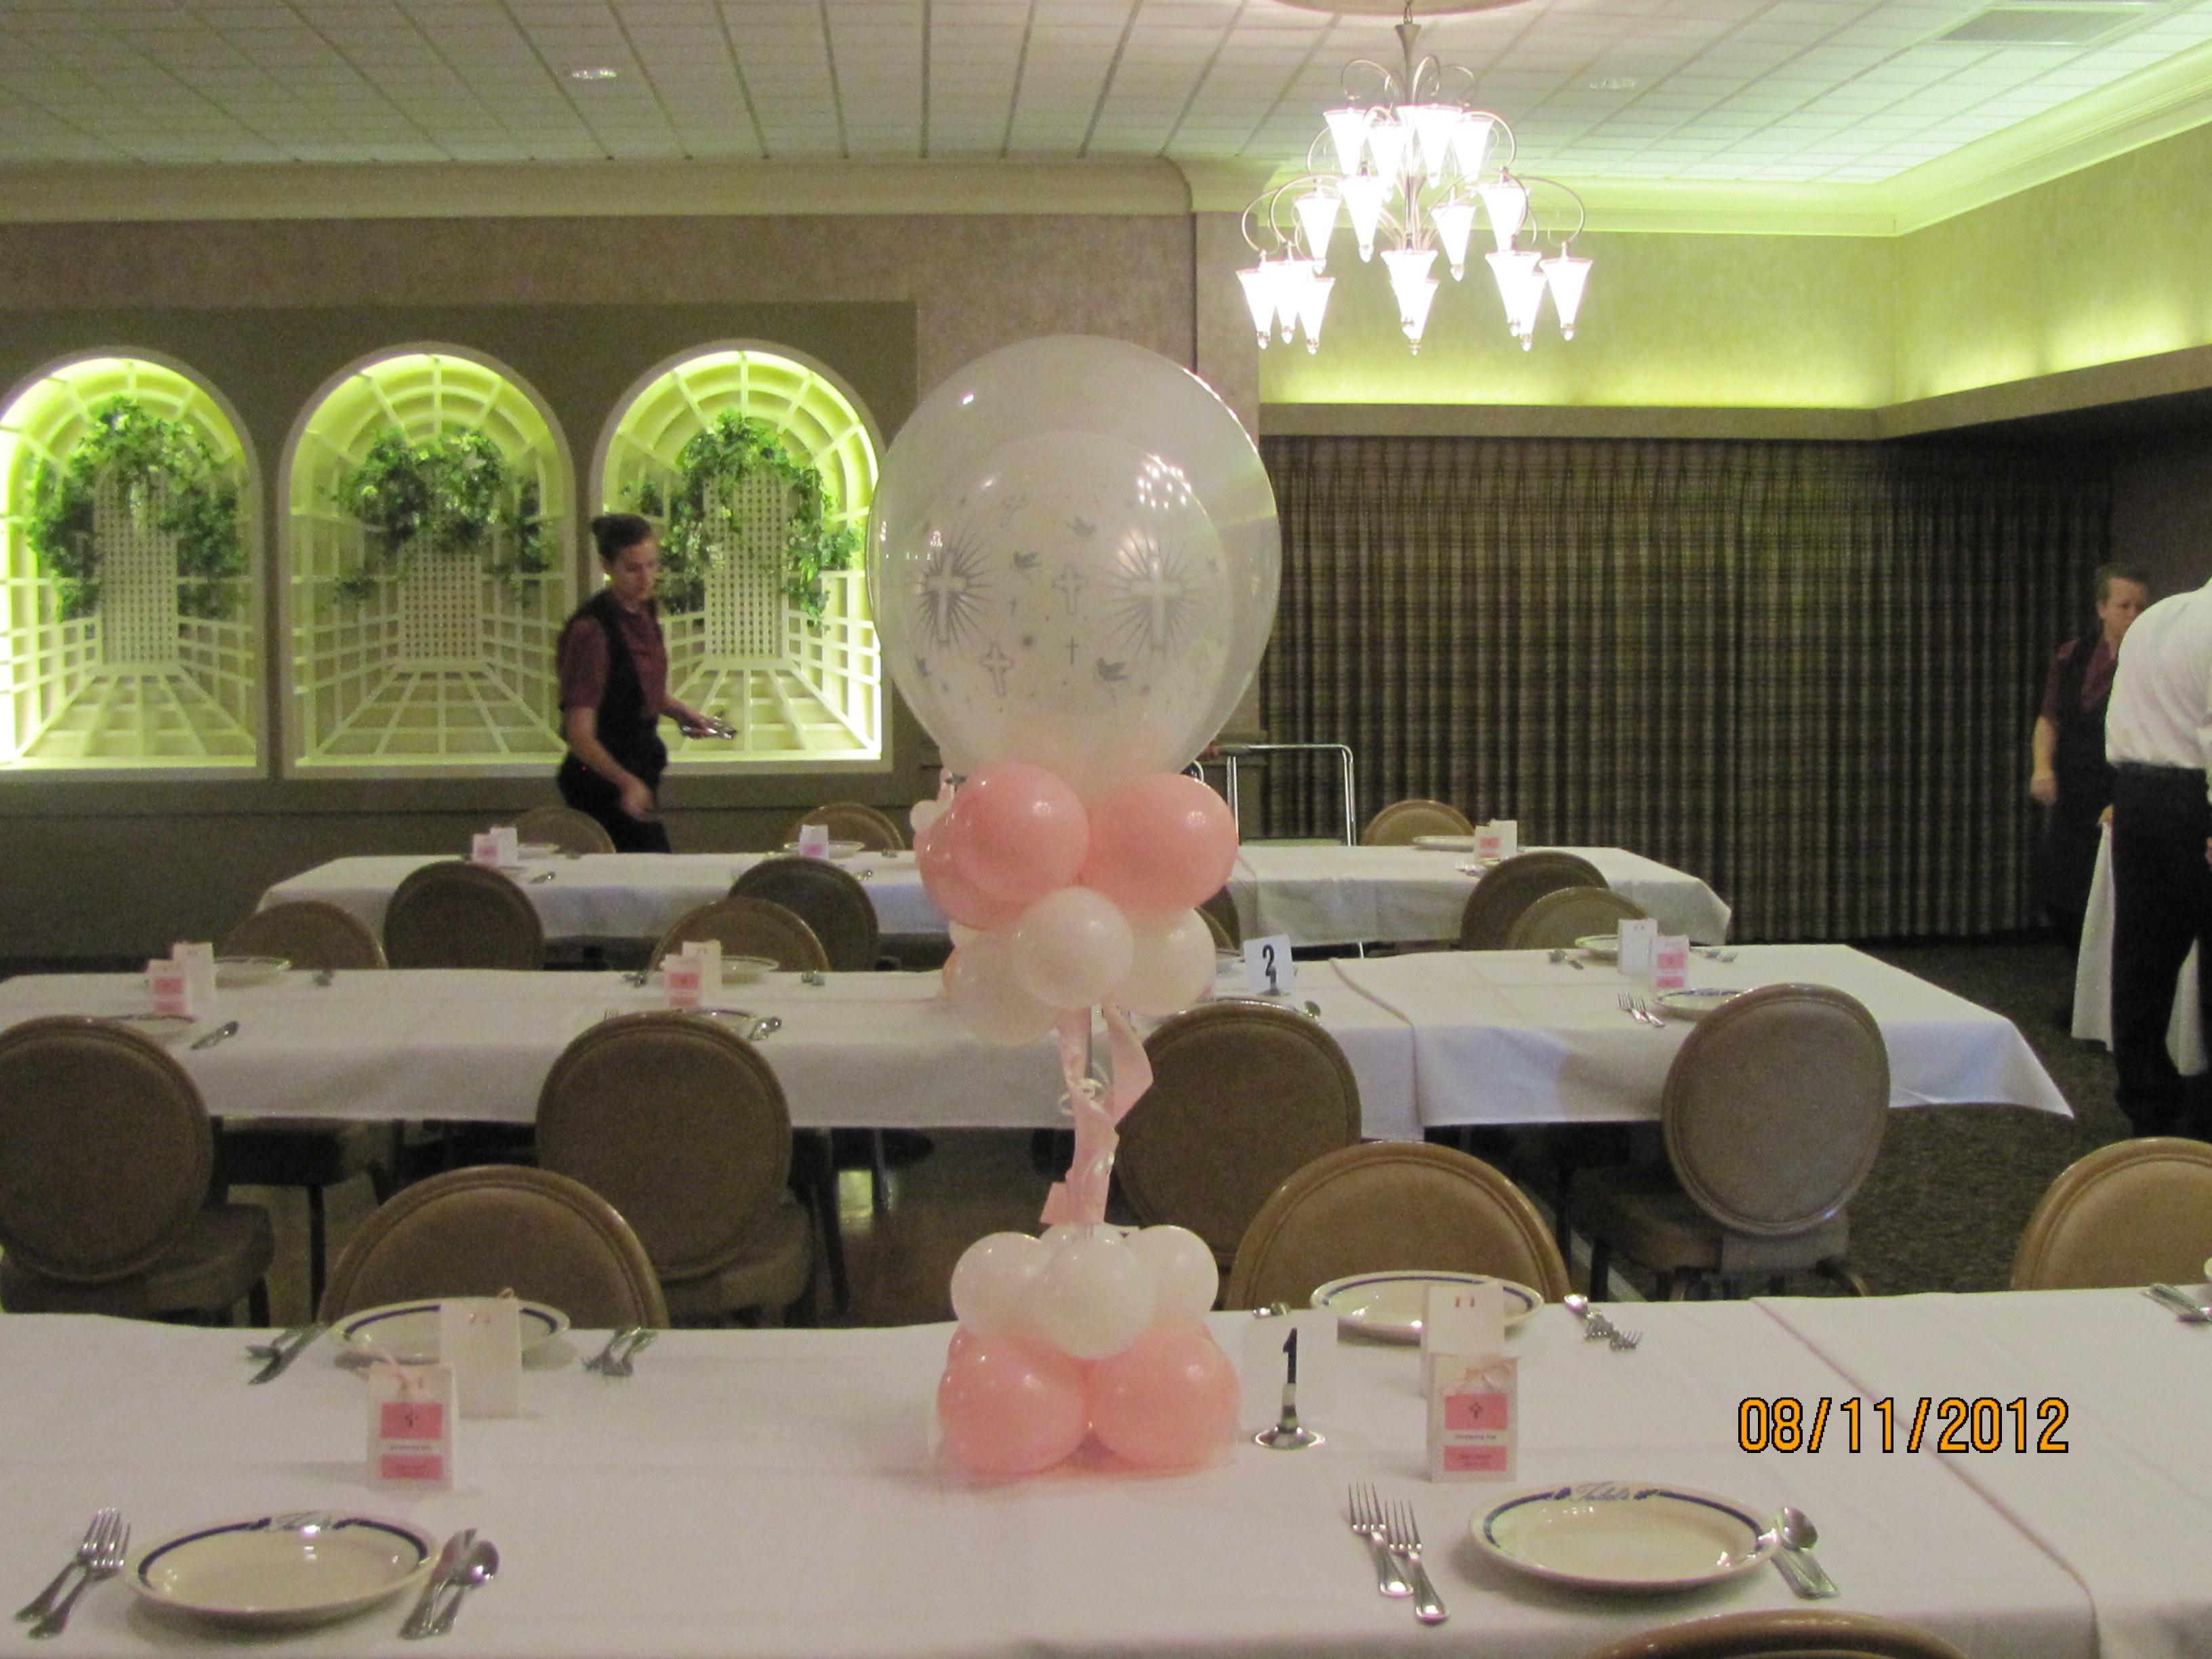 First munion Balloon Decor